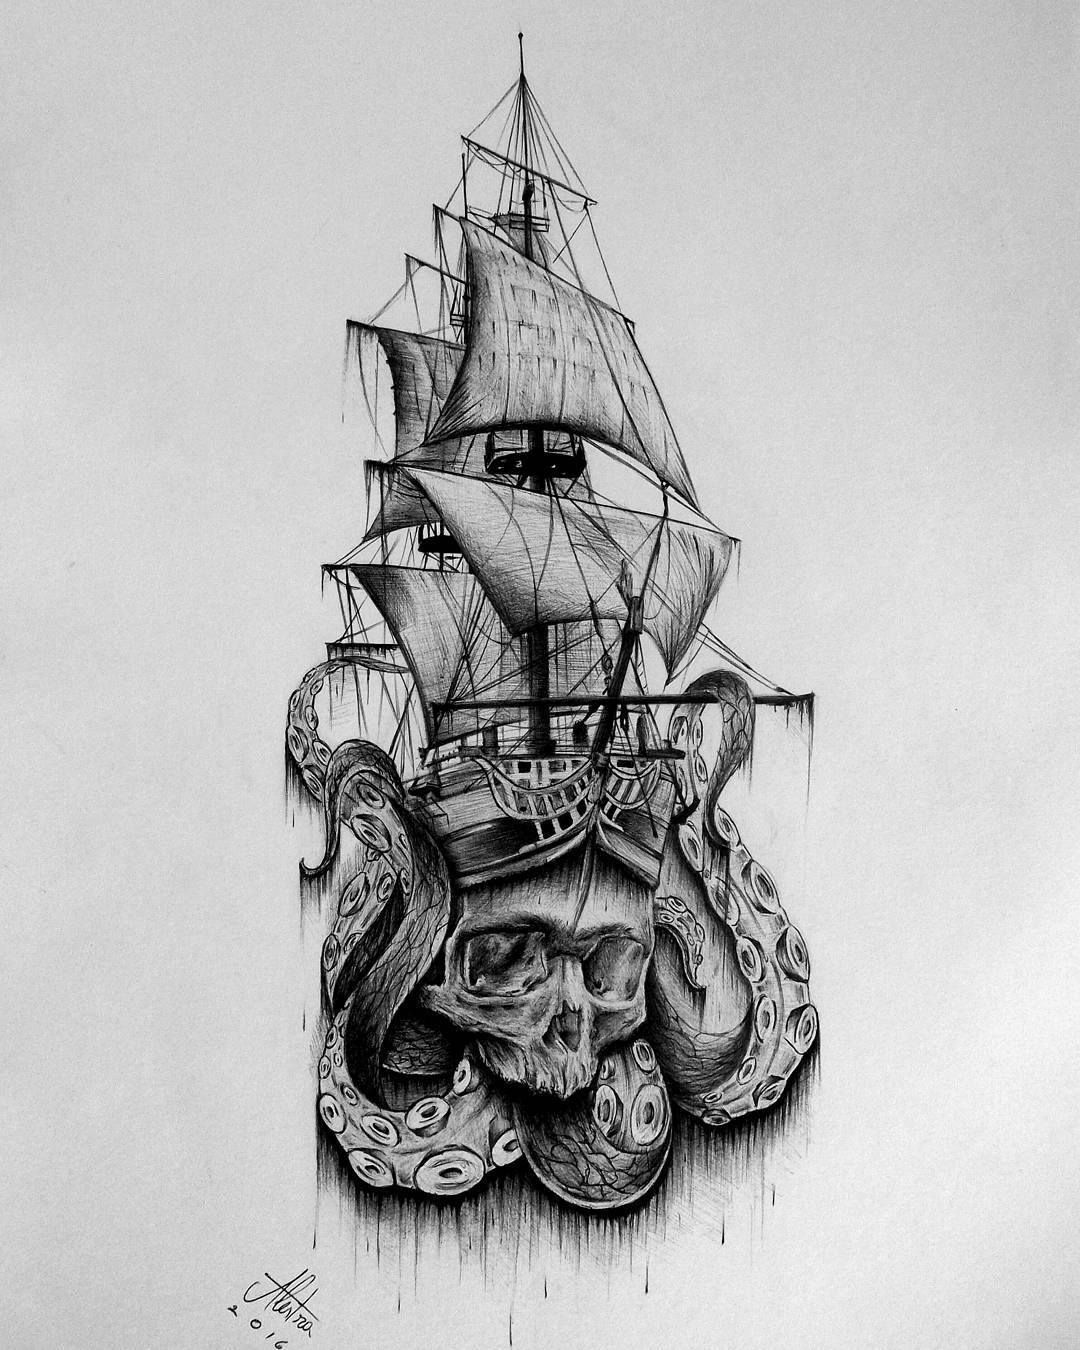 pirate ship drawing realistic pirate ship drawing at paintingvalleycom drawing pirate ship